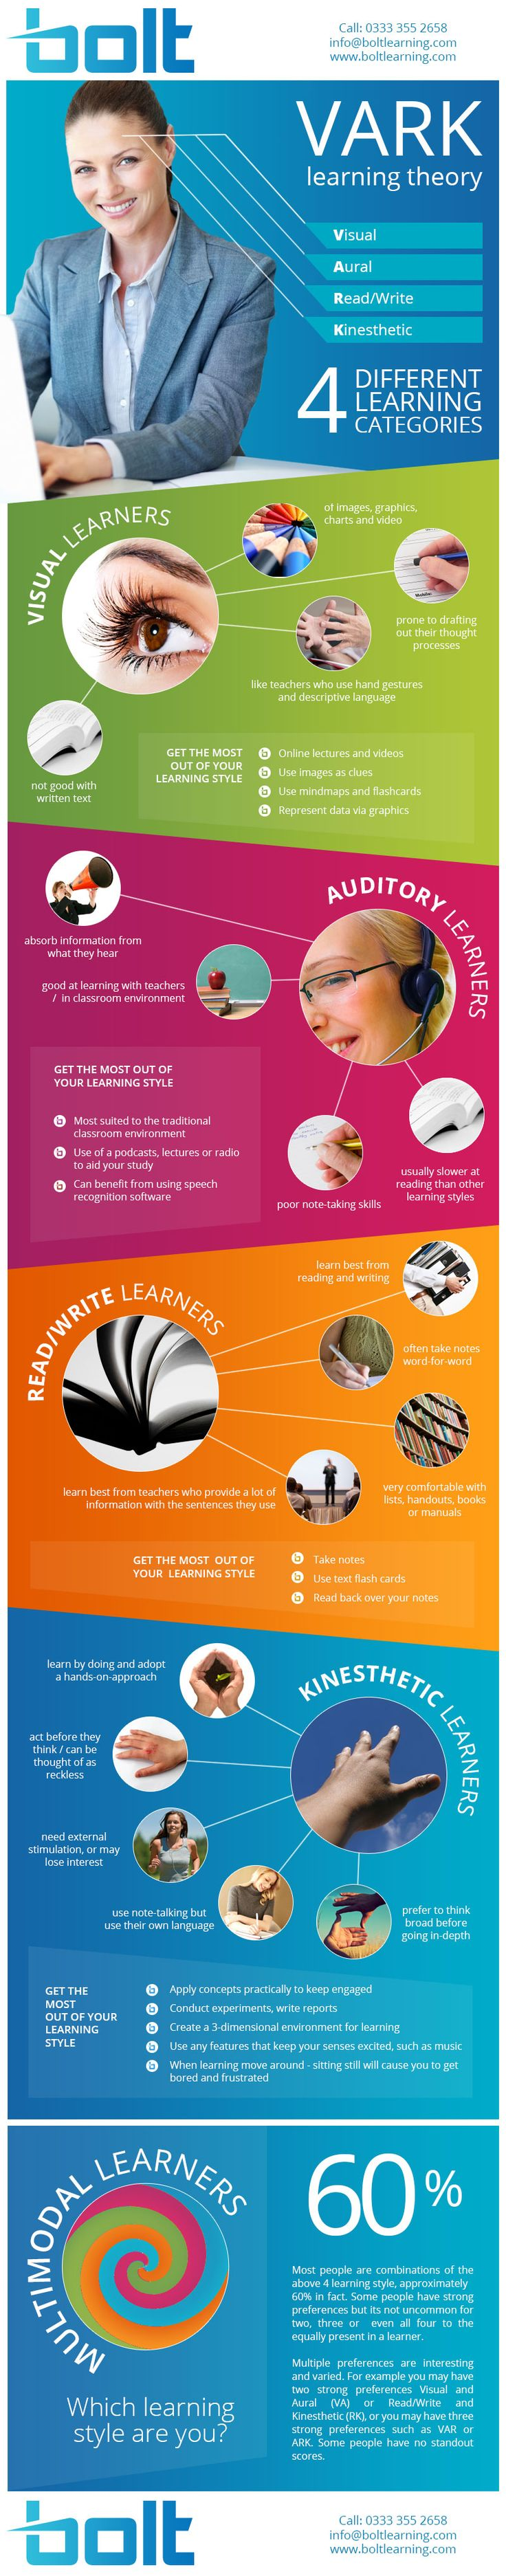 Explanation of different learning styles, commonly known as VARK.